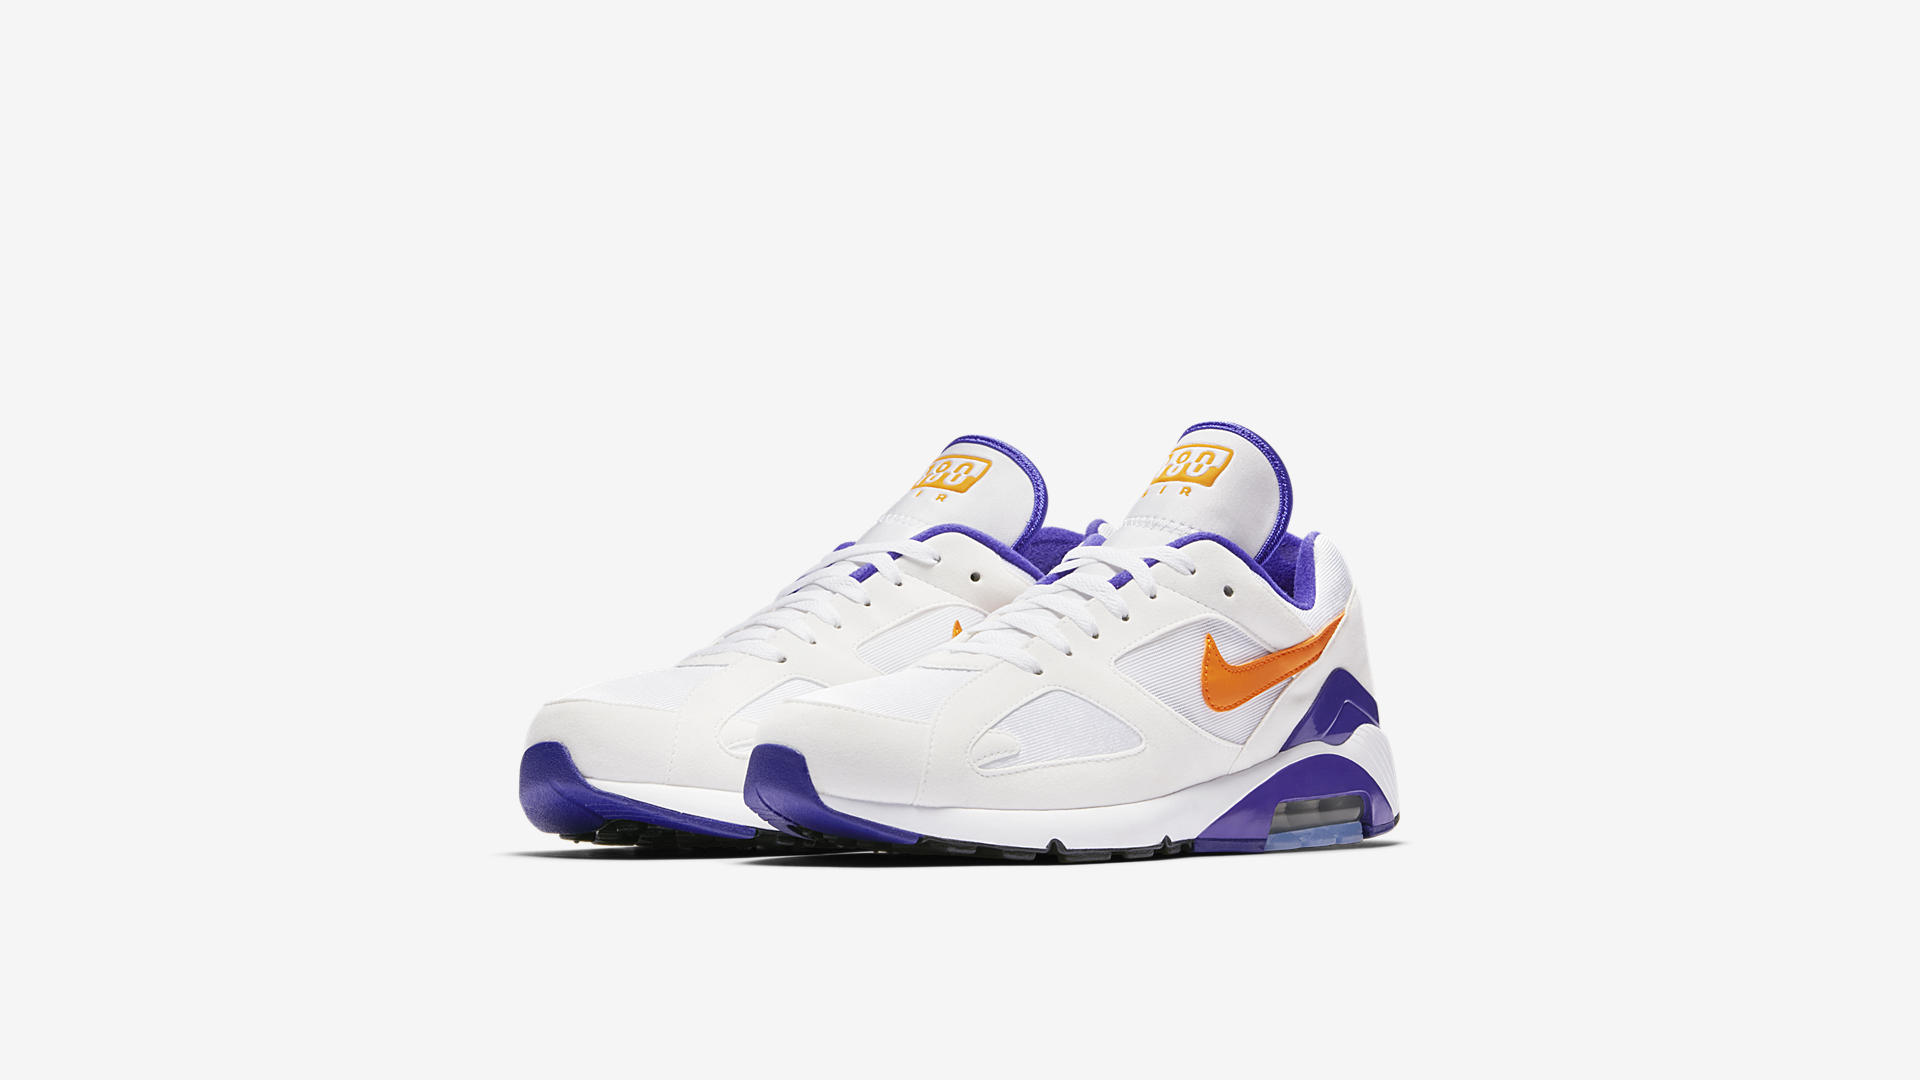 615287 101 Nike Air Max 180 Bright Ceramic 1